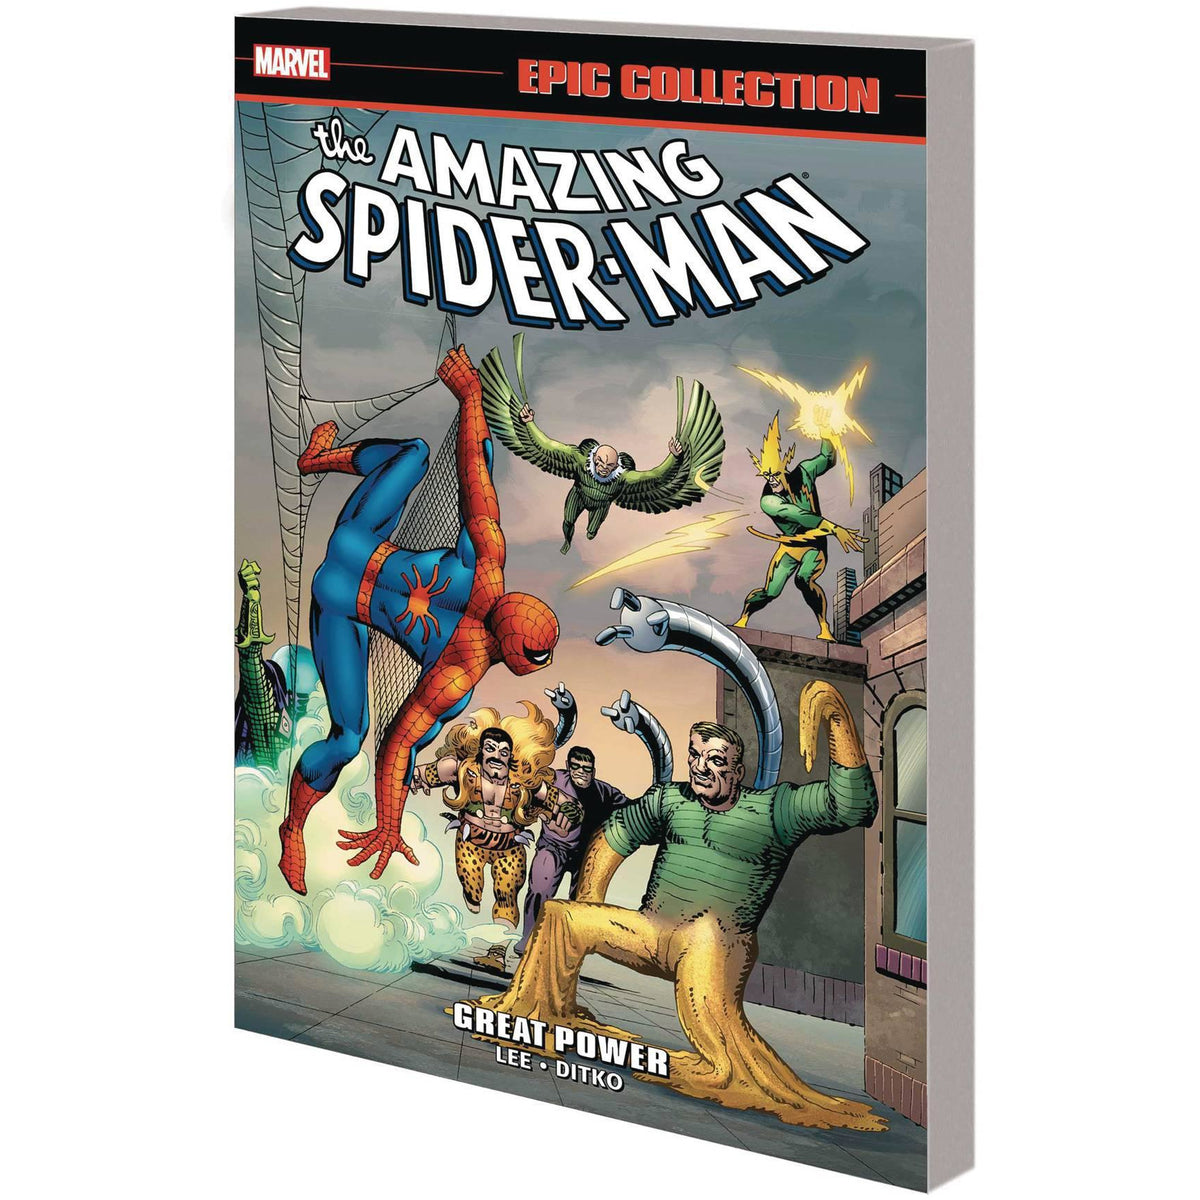 AMAZING SPIDER-MAN EPIC COLLECTION: GREAT POWER